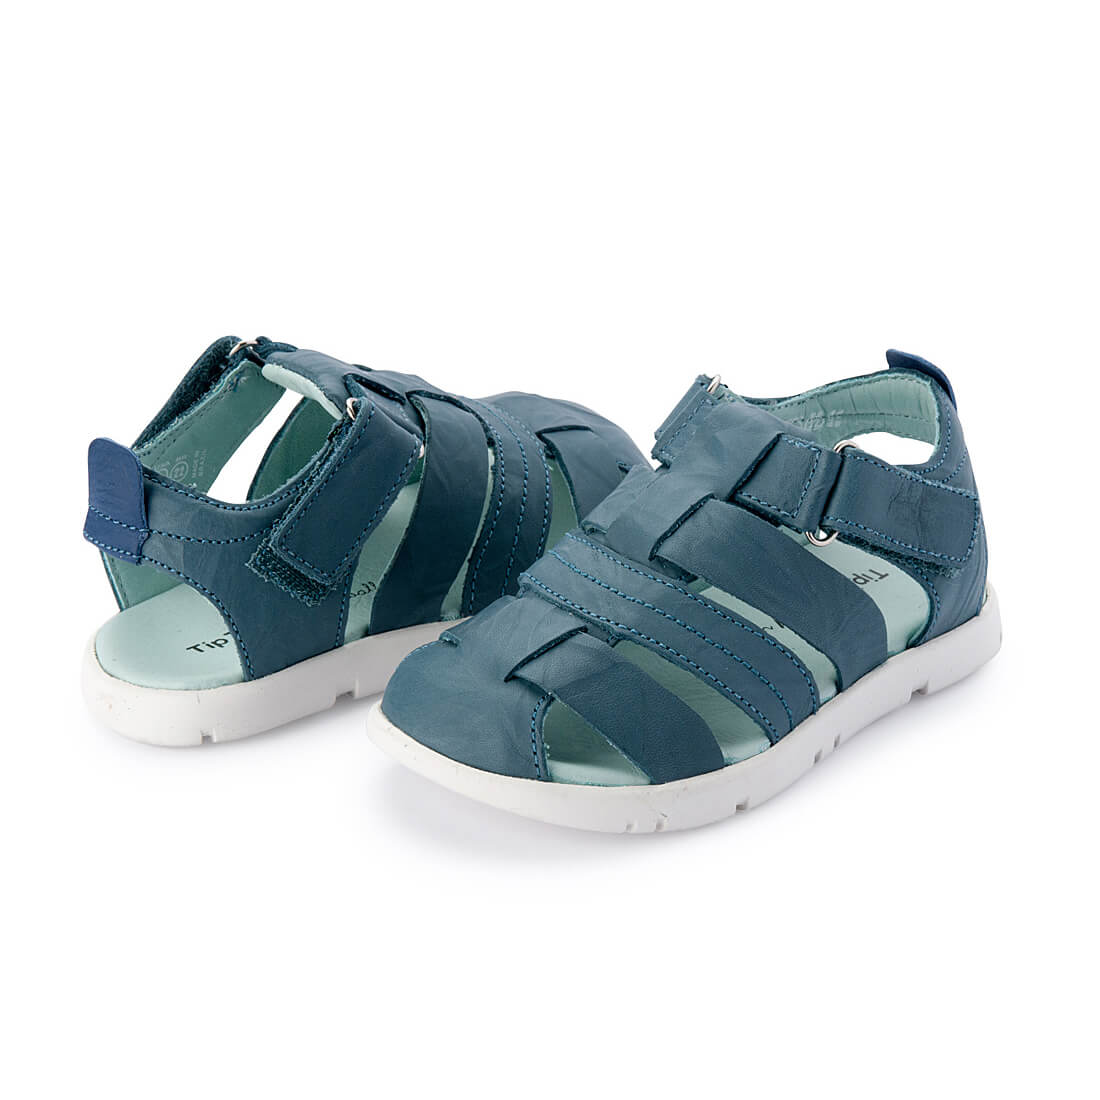 Tip Toey Joey Little Baiao Sandal – Neptune Crush angle